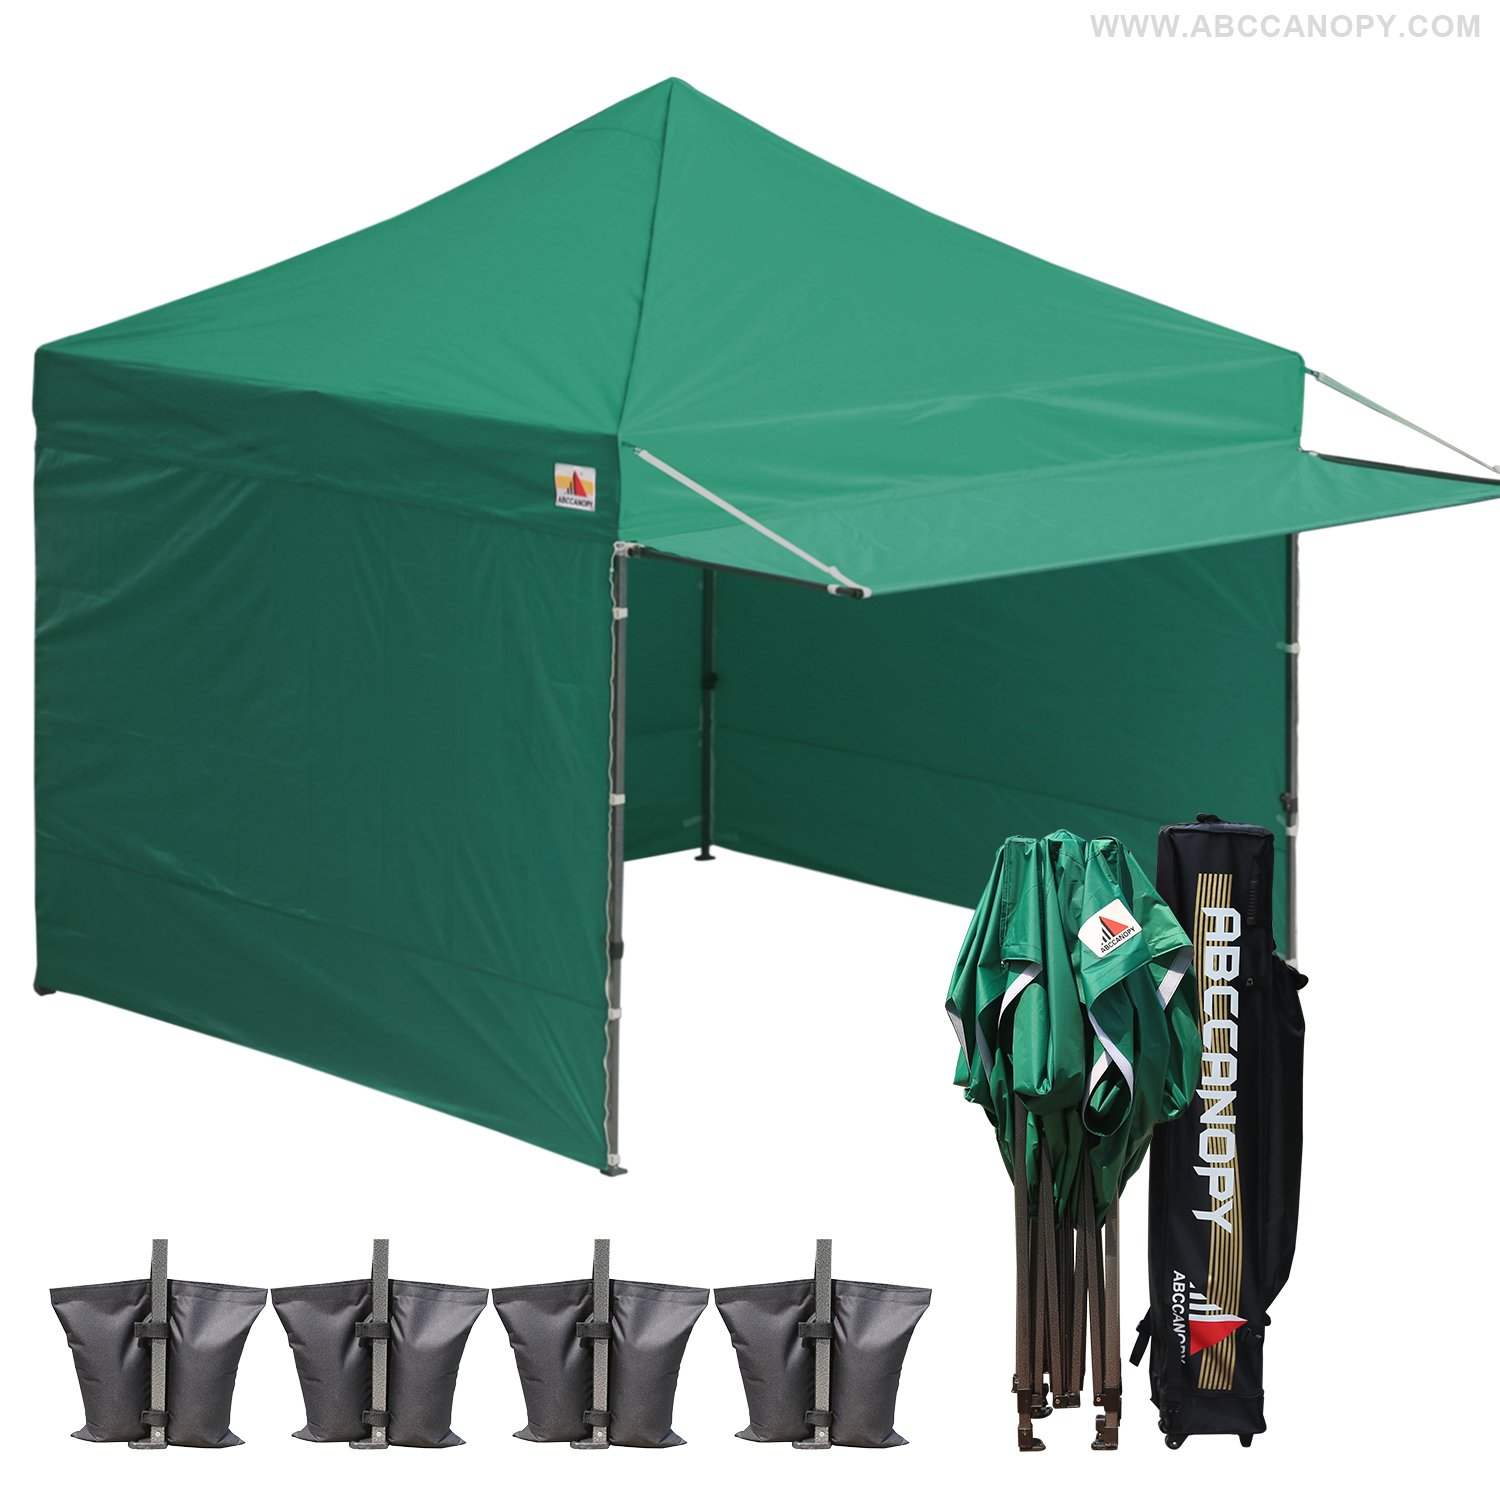 AbcCanopy 10 x 10 Forest Green Ez Pop up Canopy Ourdoor Party Tent Gazebo With 3 Removable Zipper Sidewalls and 1 Removable Zipper Doorwall BOUNS Canopy awning and Roller Bag